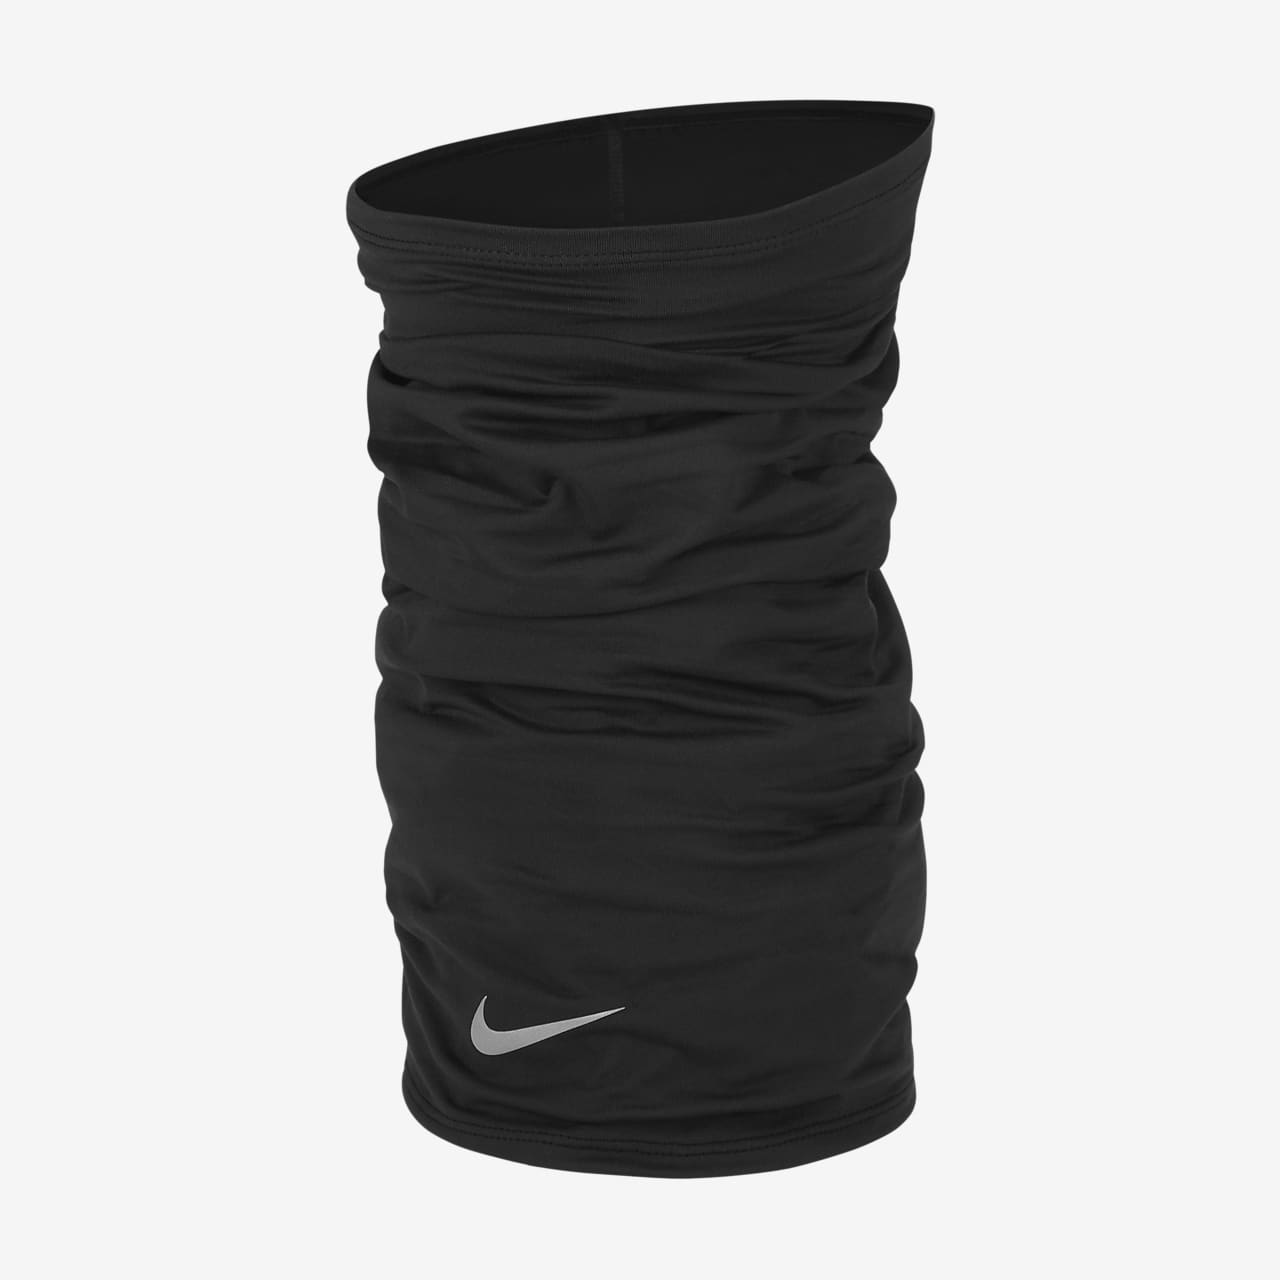 Gola multiusos de running Nike Dri-FIT